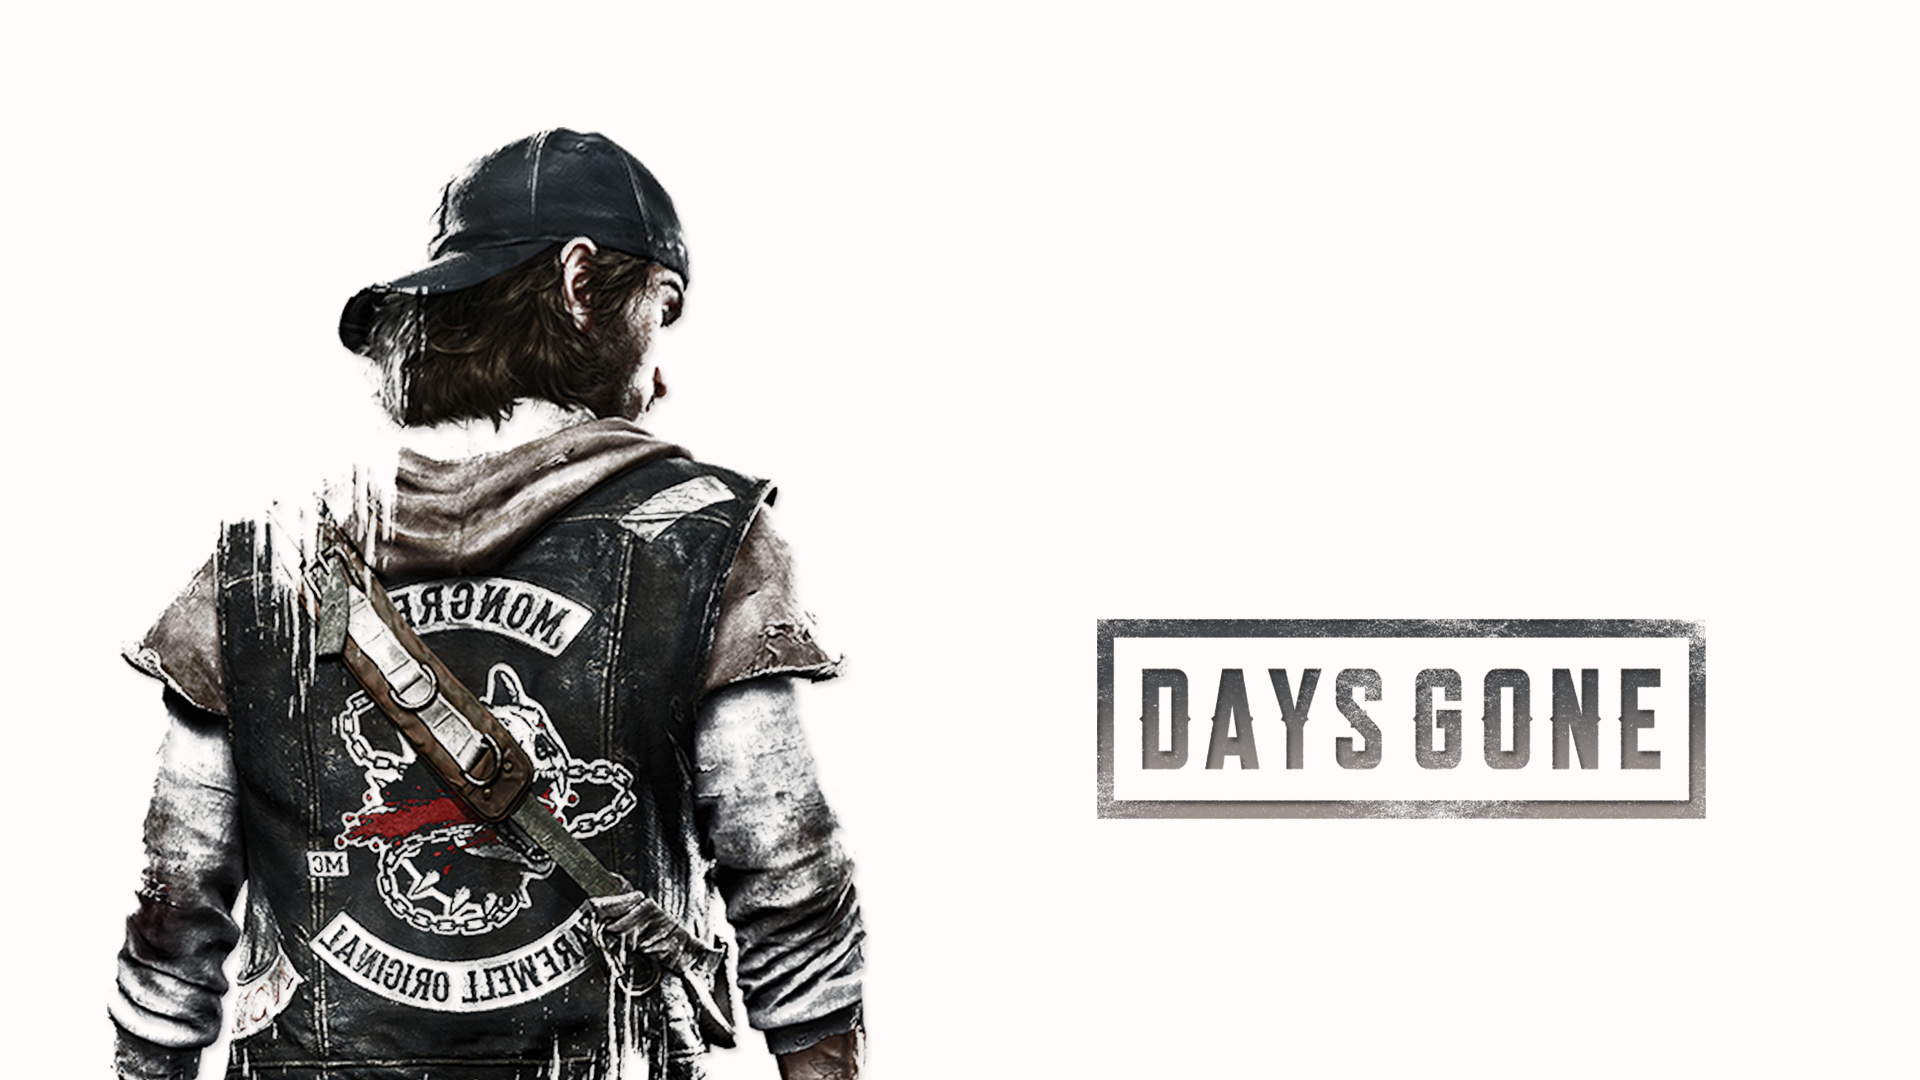 download Days Gone To Release February 2019 [1920x1080] for 1920x1080